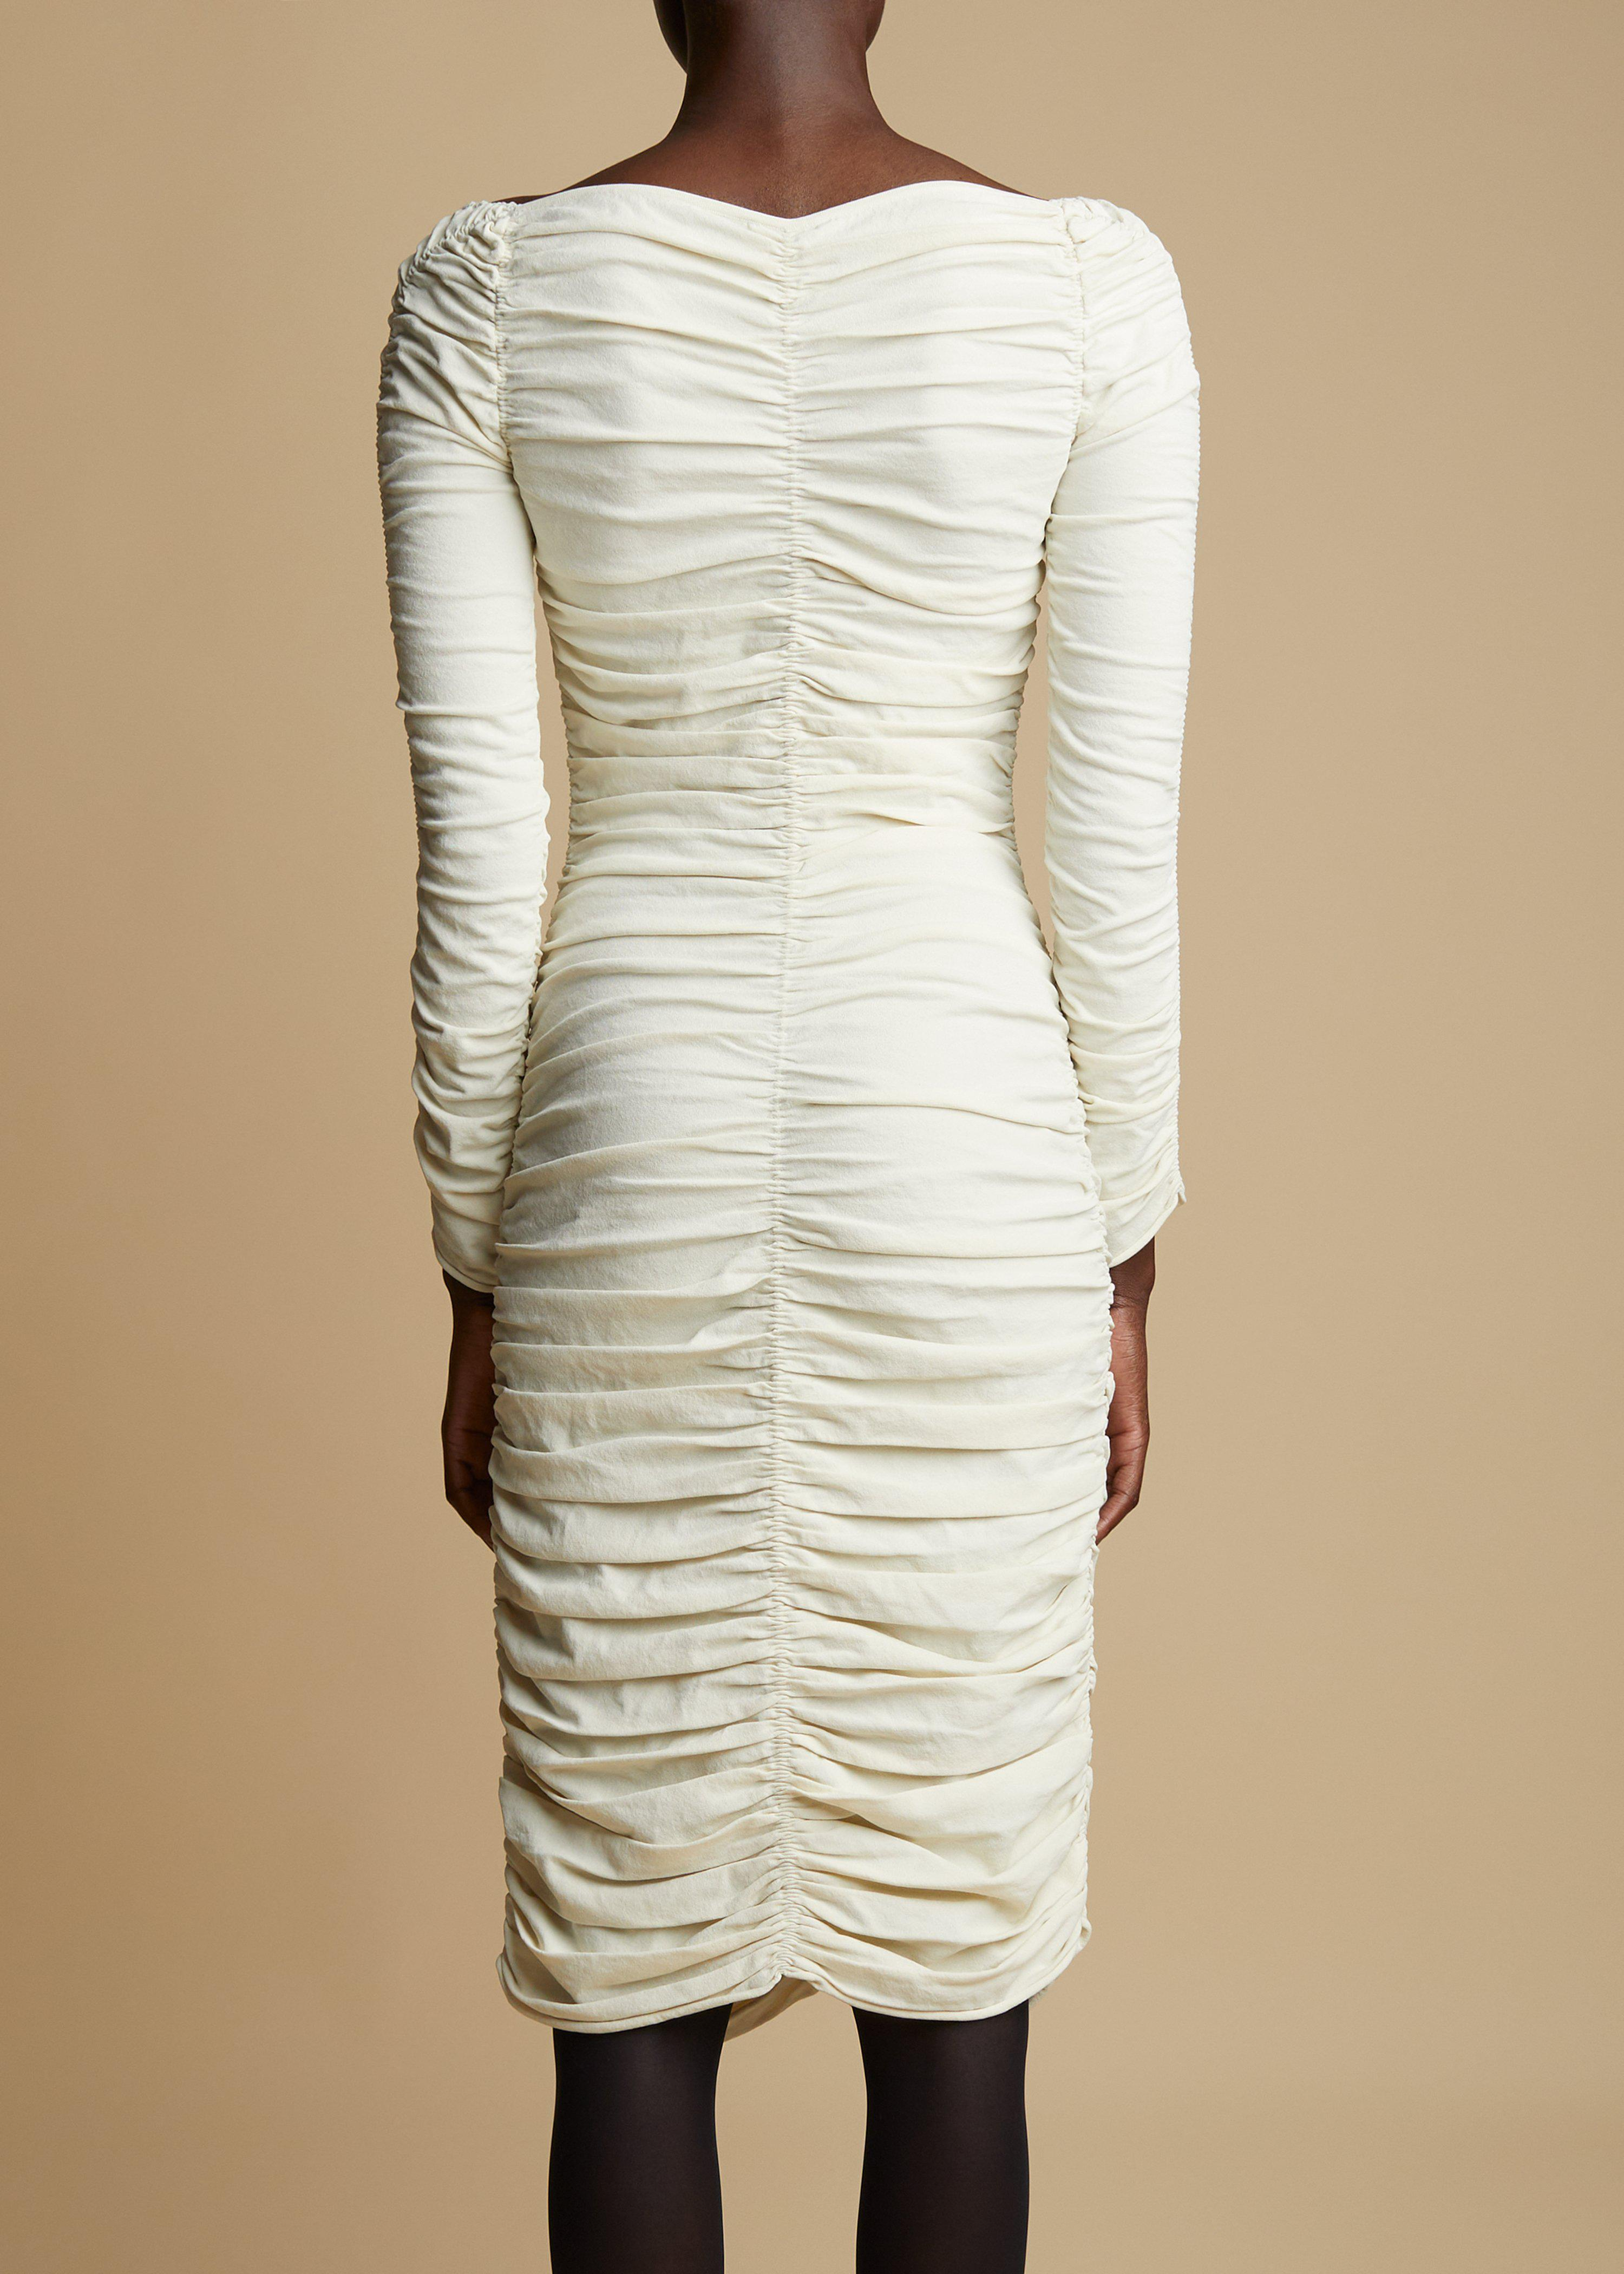 The Charmaine Dress in Ivory 2